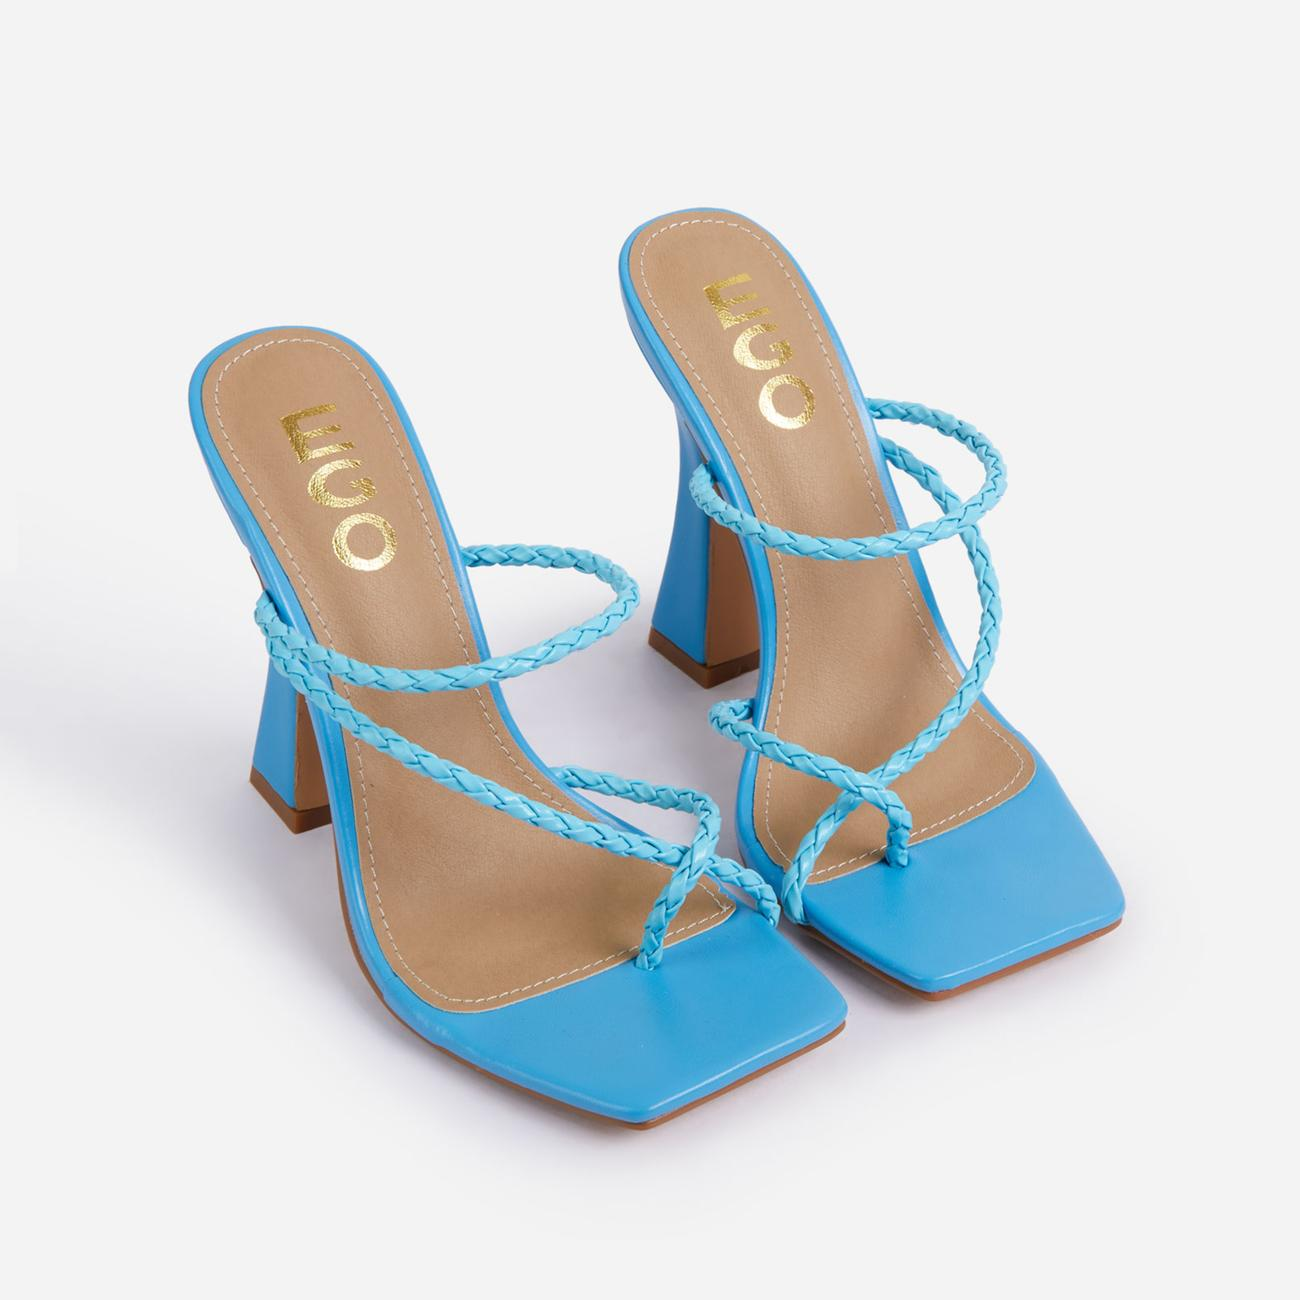 Tahiti Strappy Plait Detail Square Toe Heel Mule In Blue Faux Leather Image 2